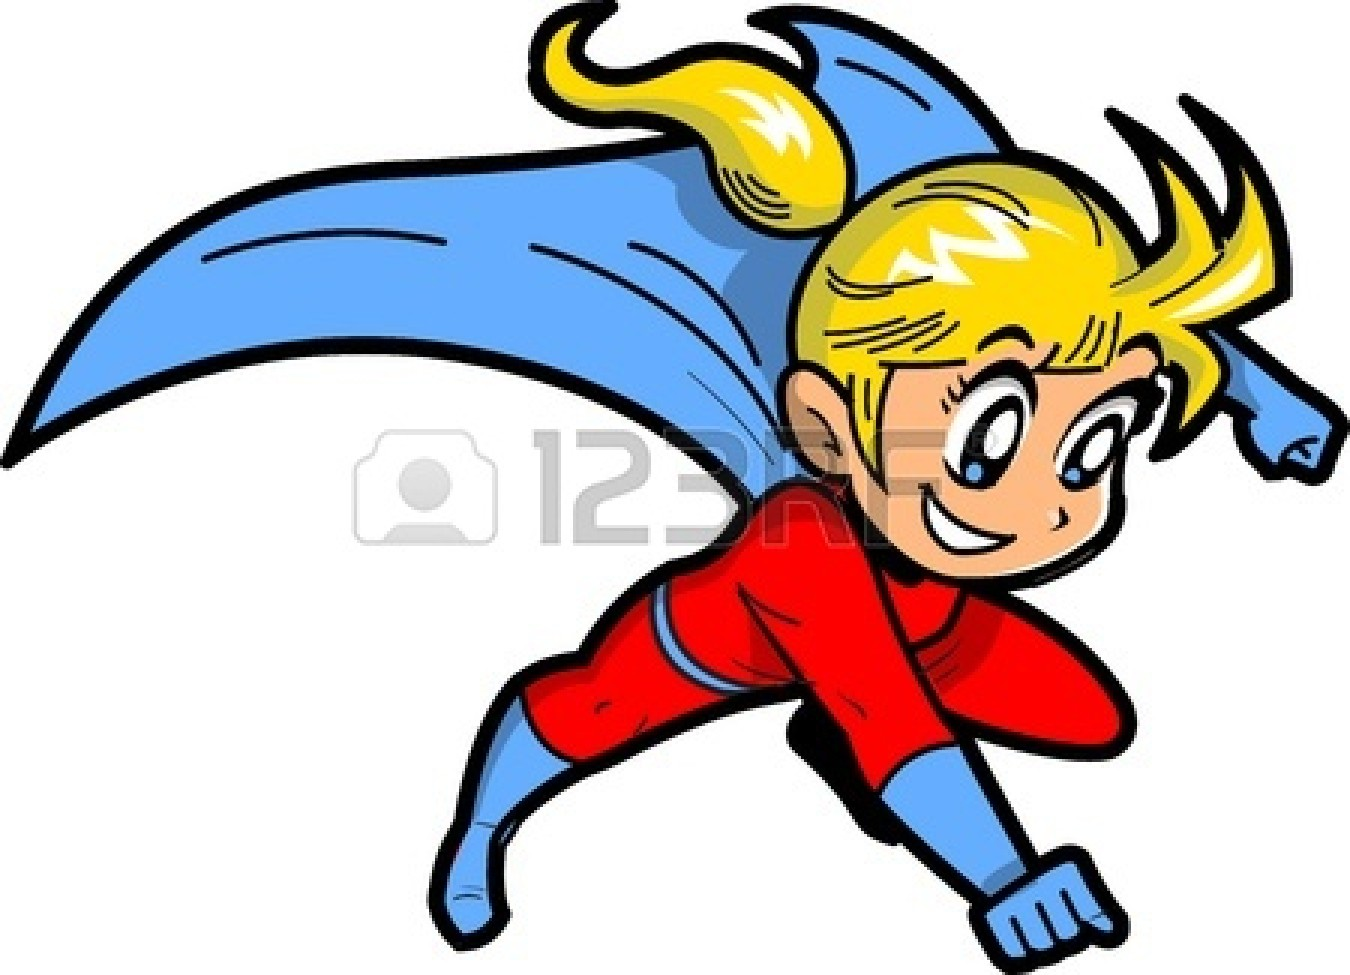 Superman kid clipart girl clip art library stock Superman kid clipart girl - ClipartFest clip art library stock